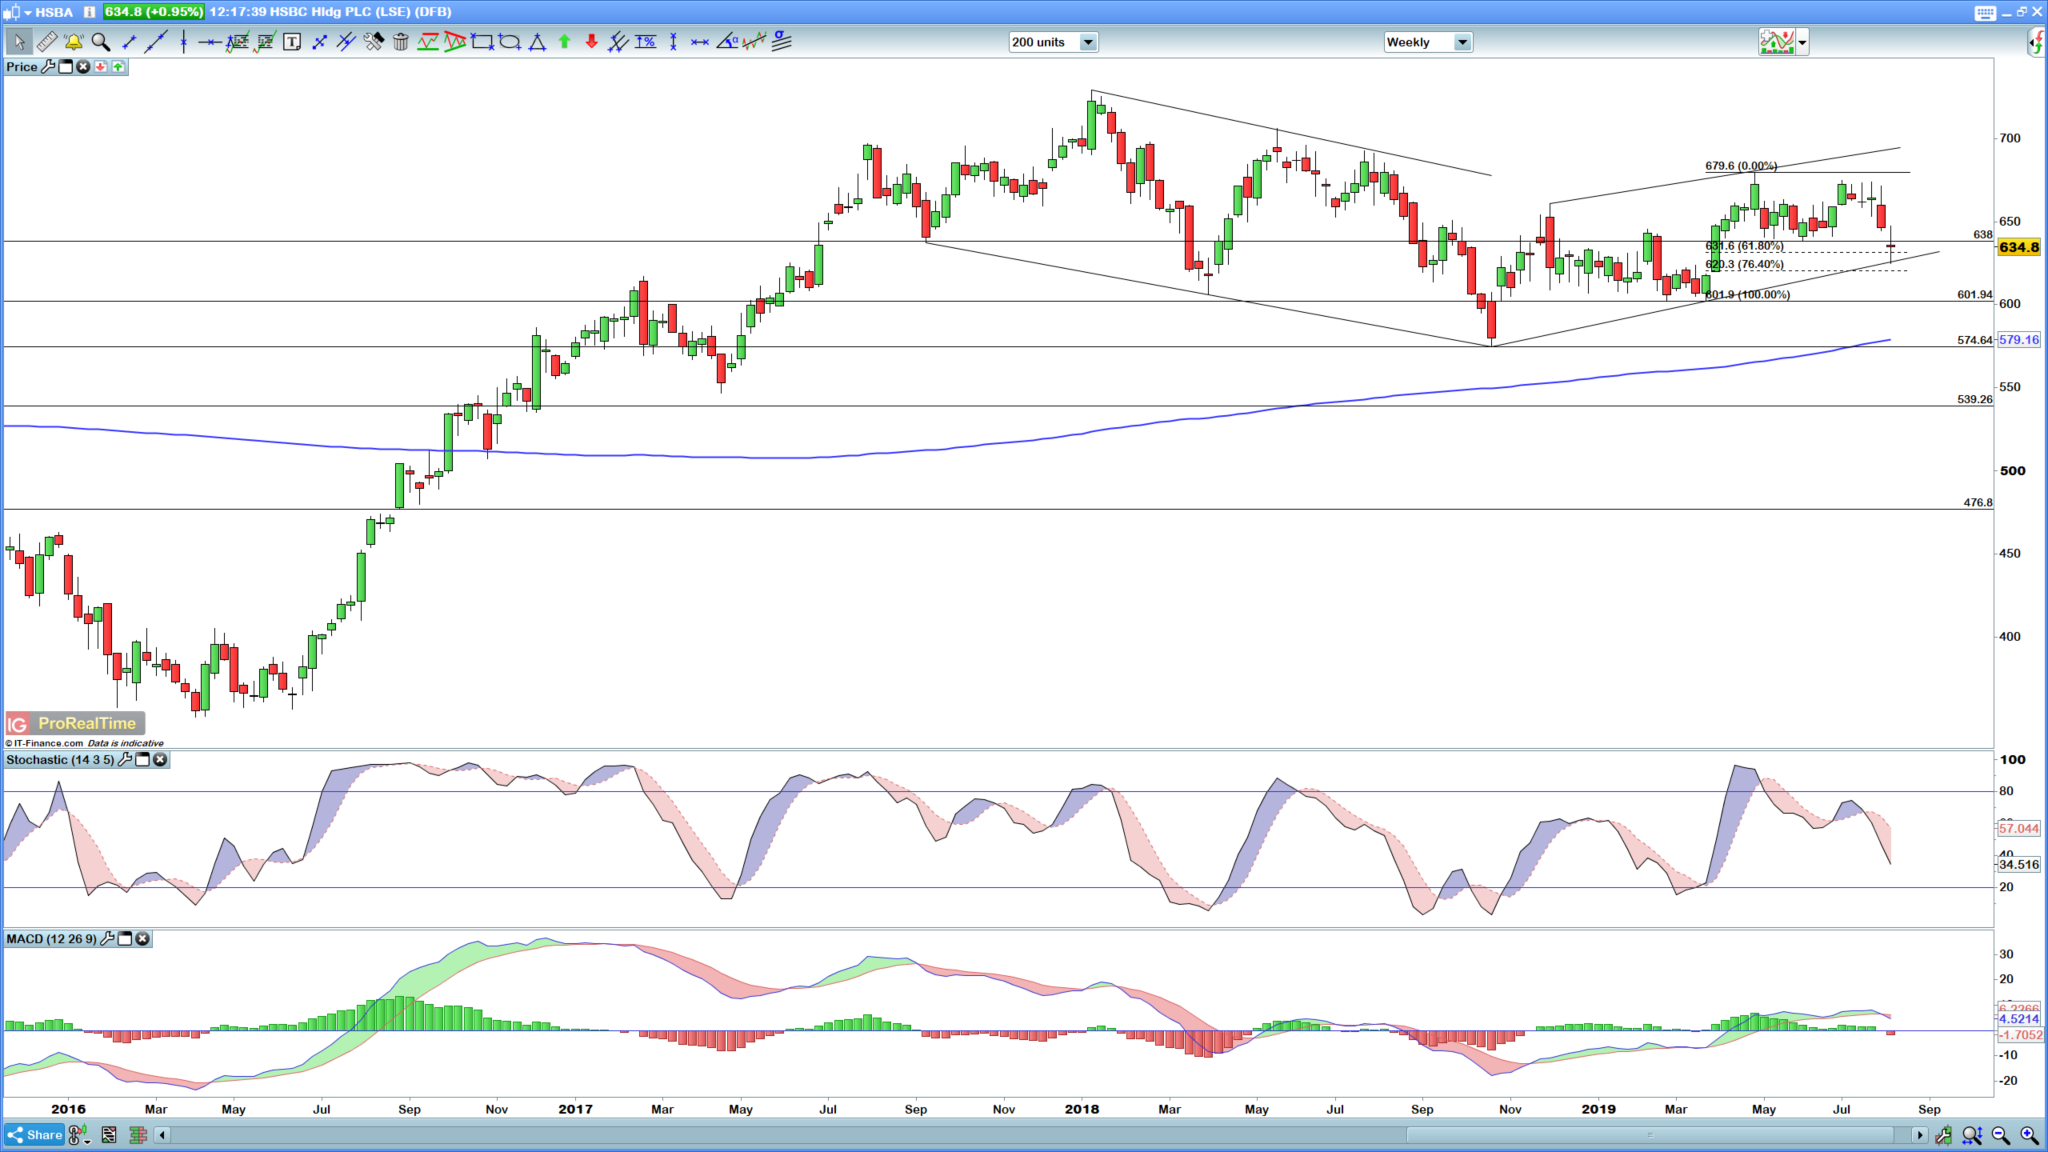 Where next for Lloyds, RBS, HSBC, and Barclays share prices